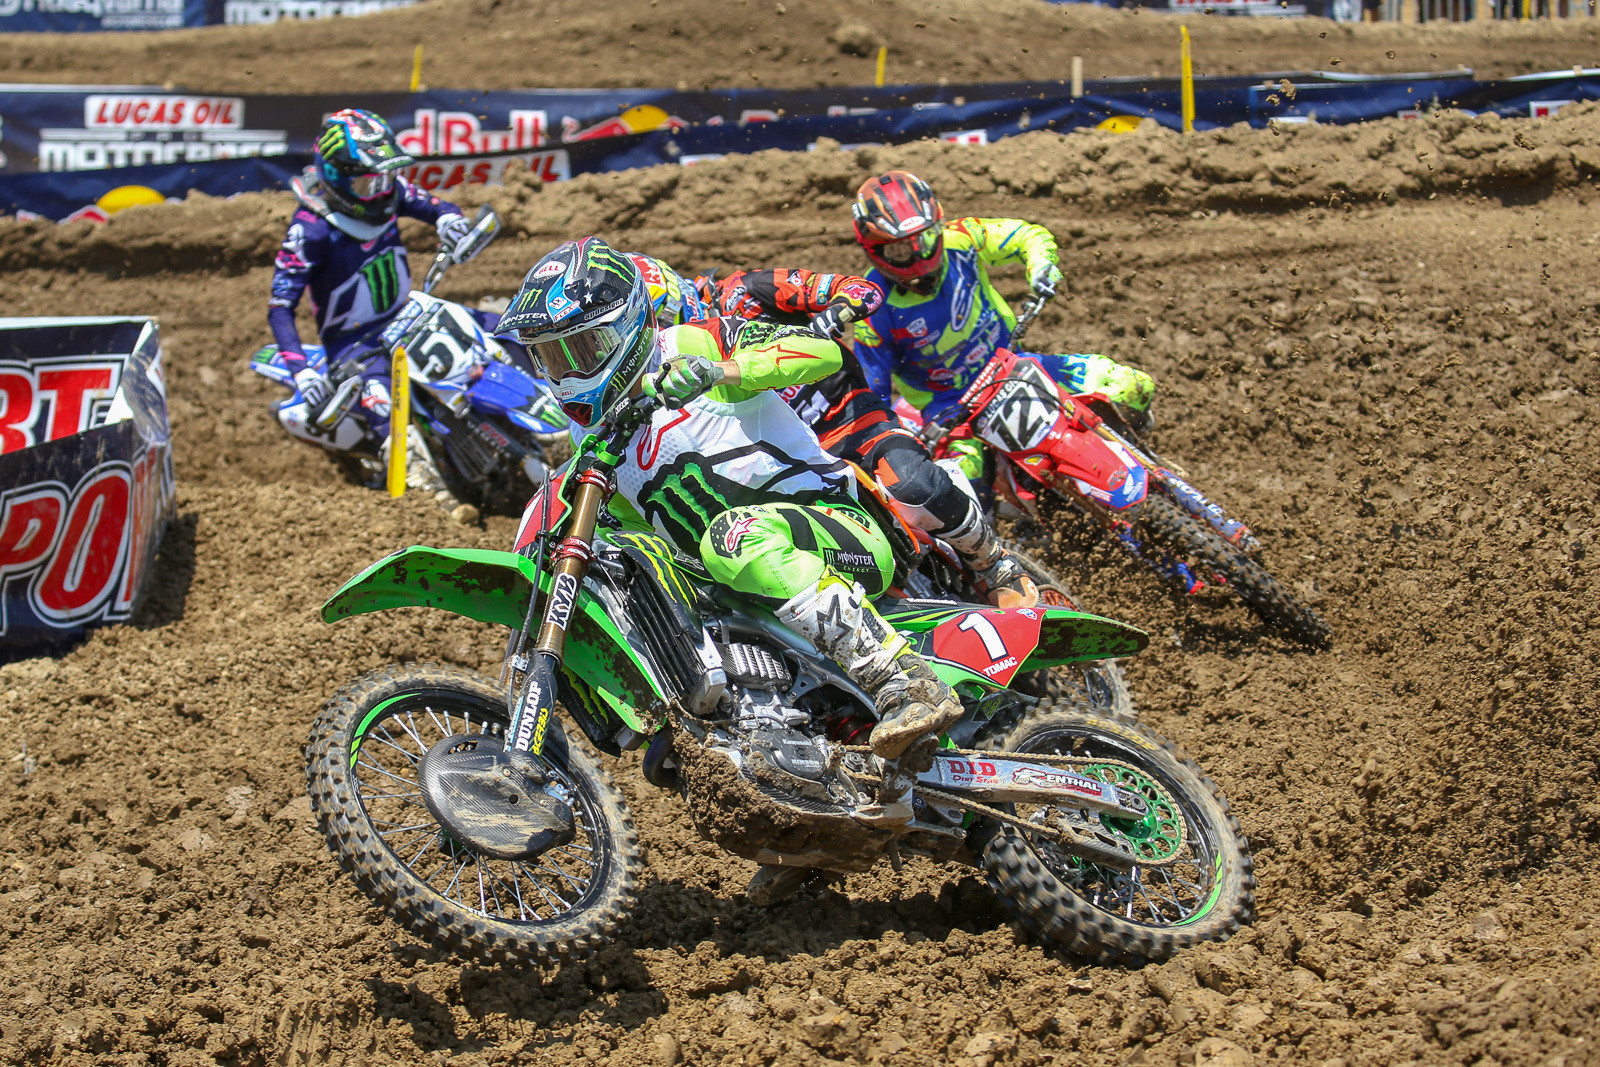 Eli Tomac and Marvin Musquin got away cleanly, as did Cody Cooper and Justin Barcia.